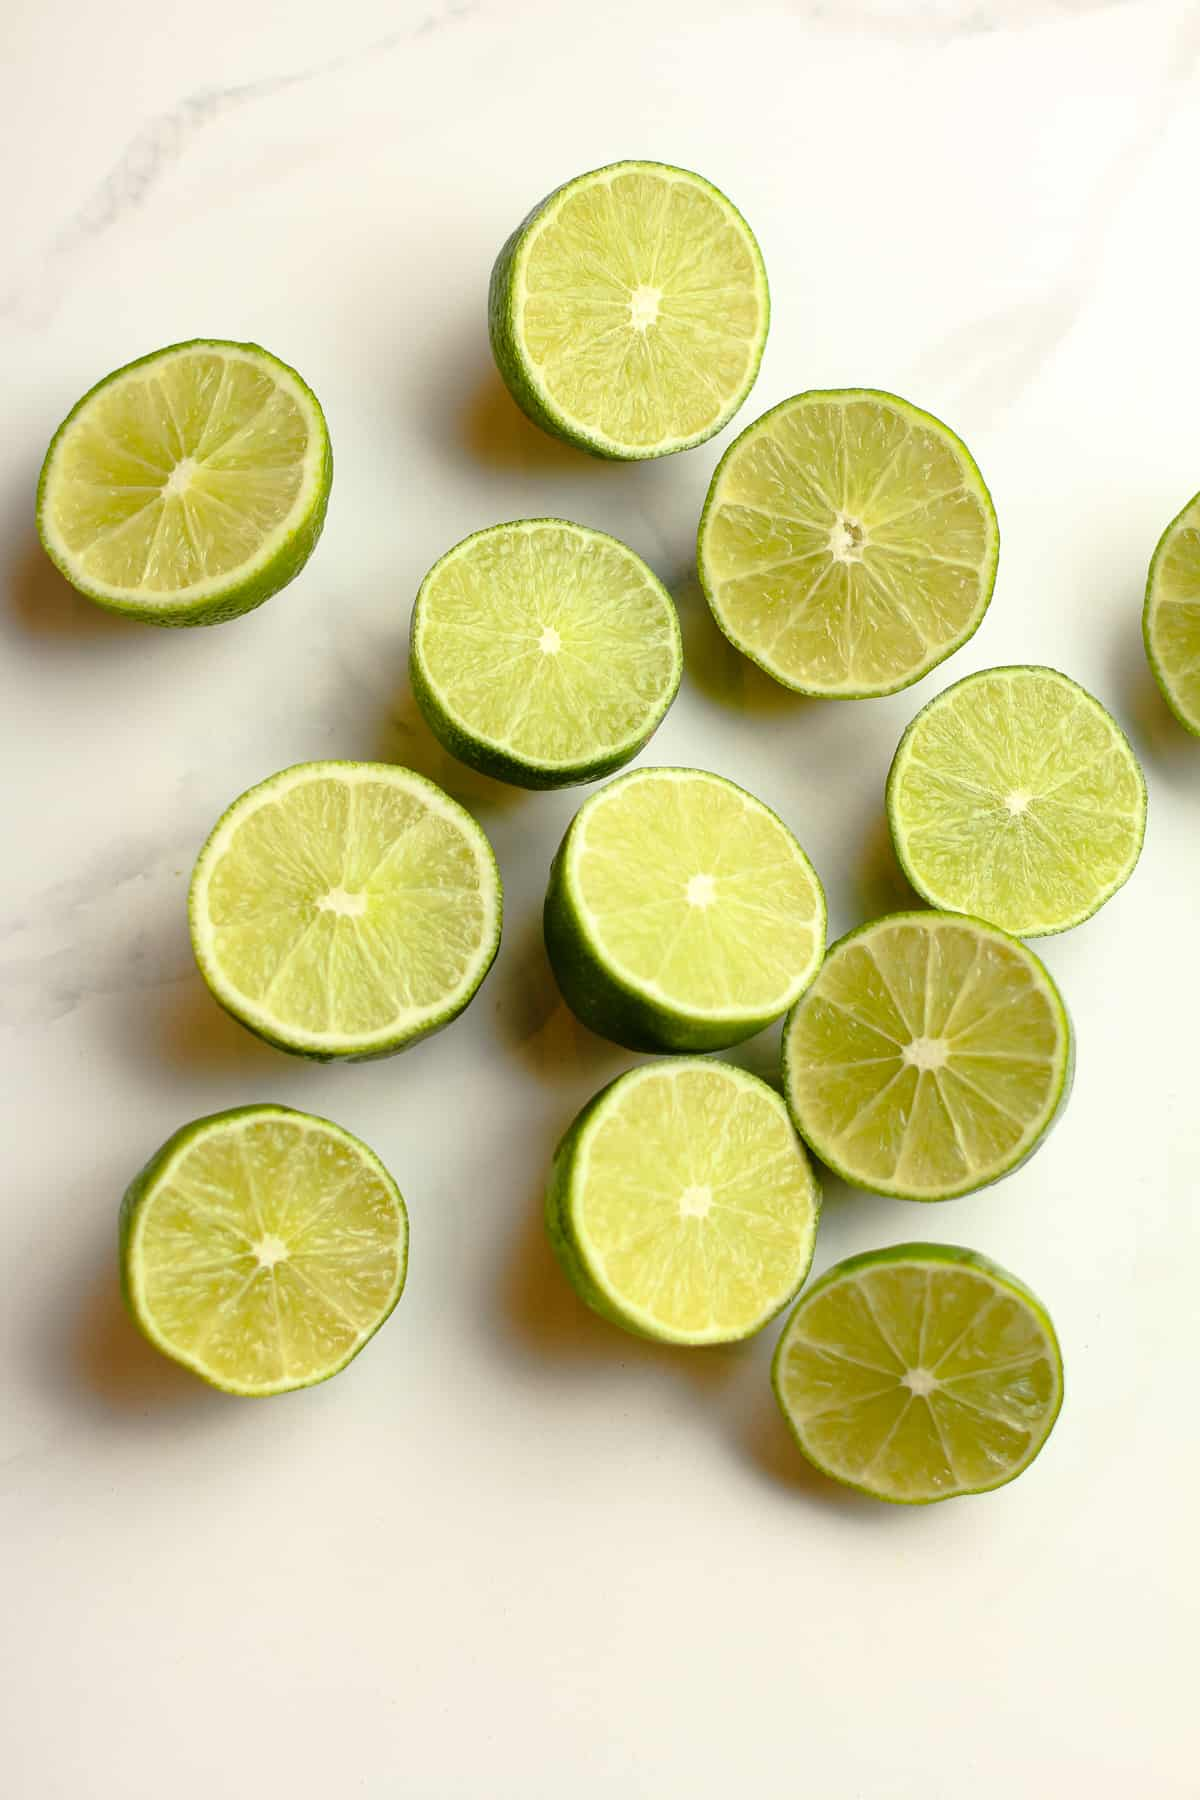 Halved limes on a white surface.